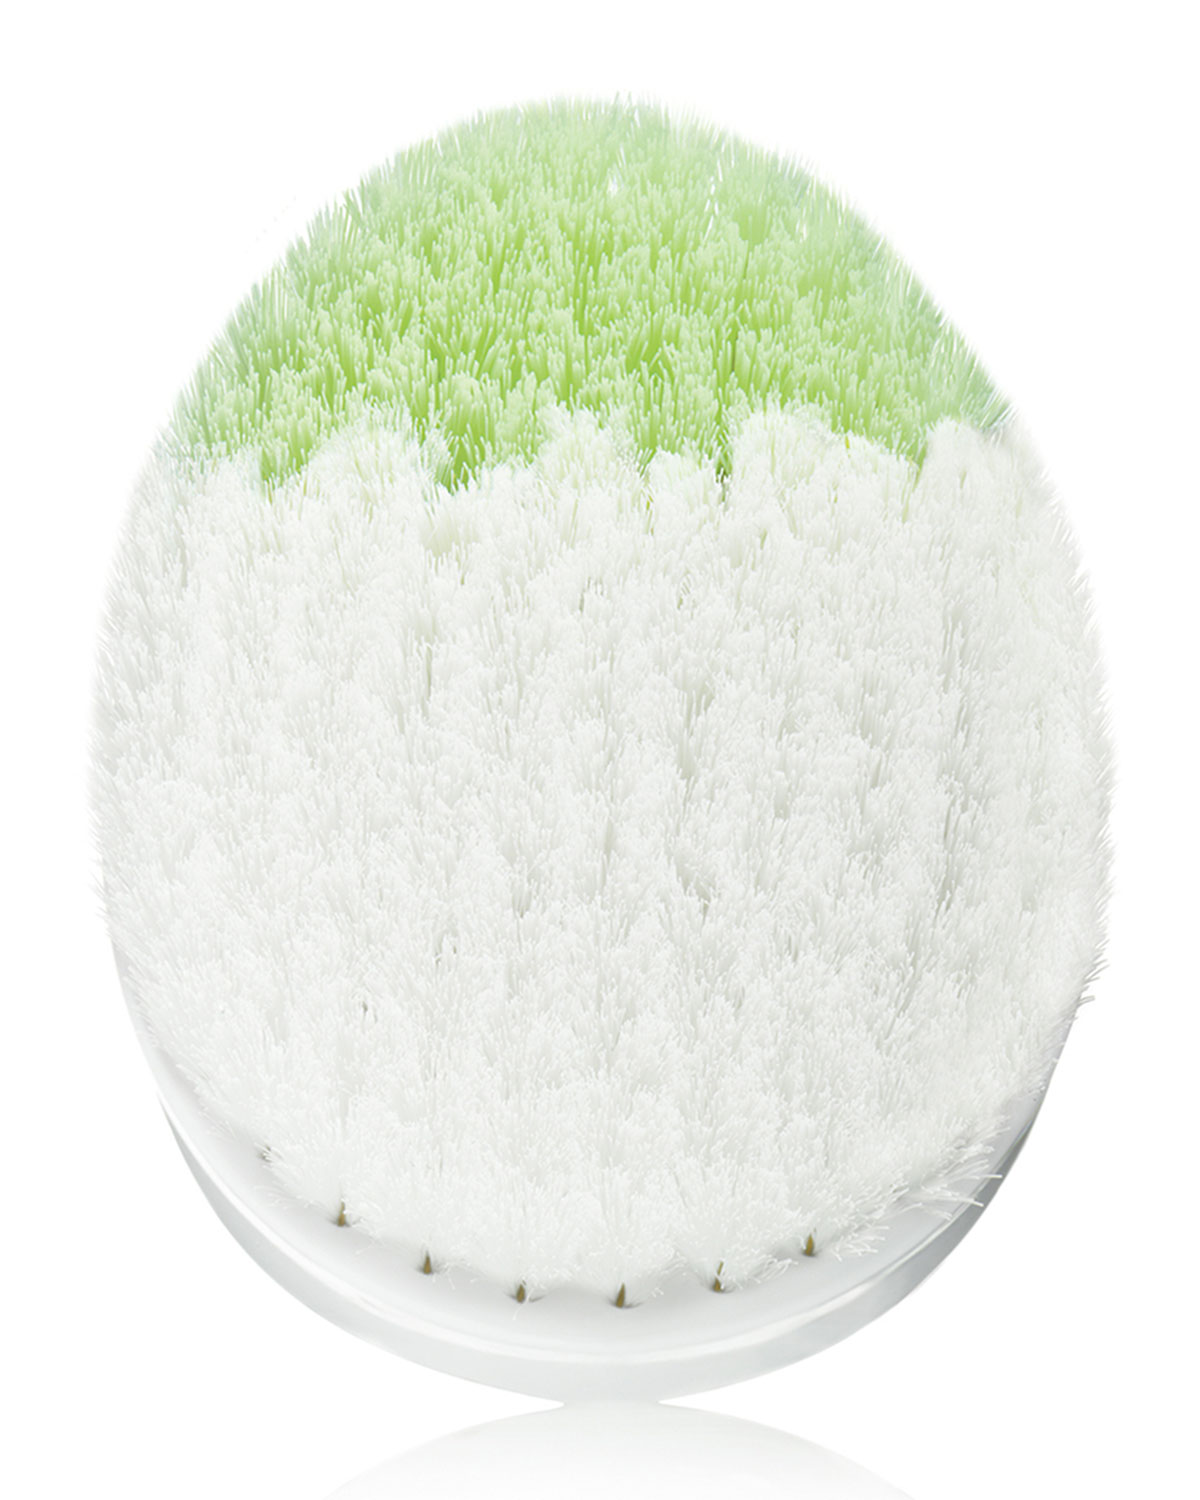 Sonic System Purifying Cleansing Brush Head Refill